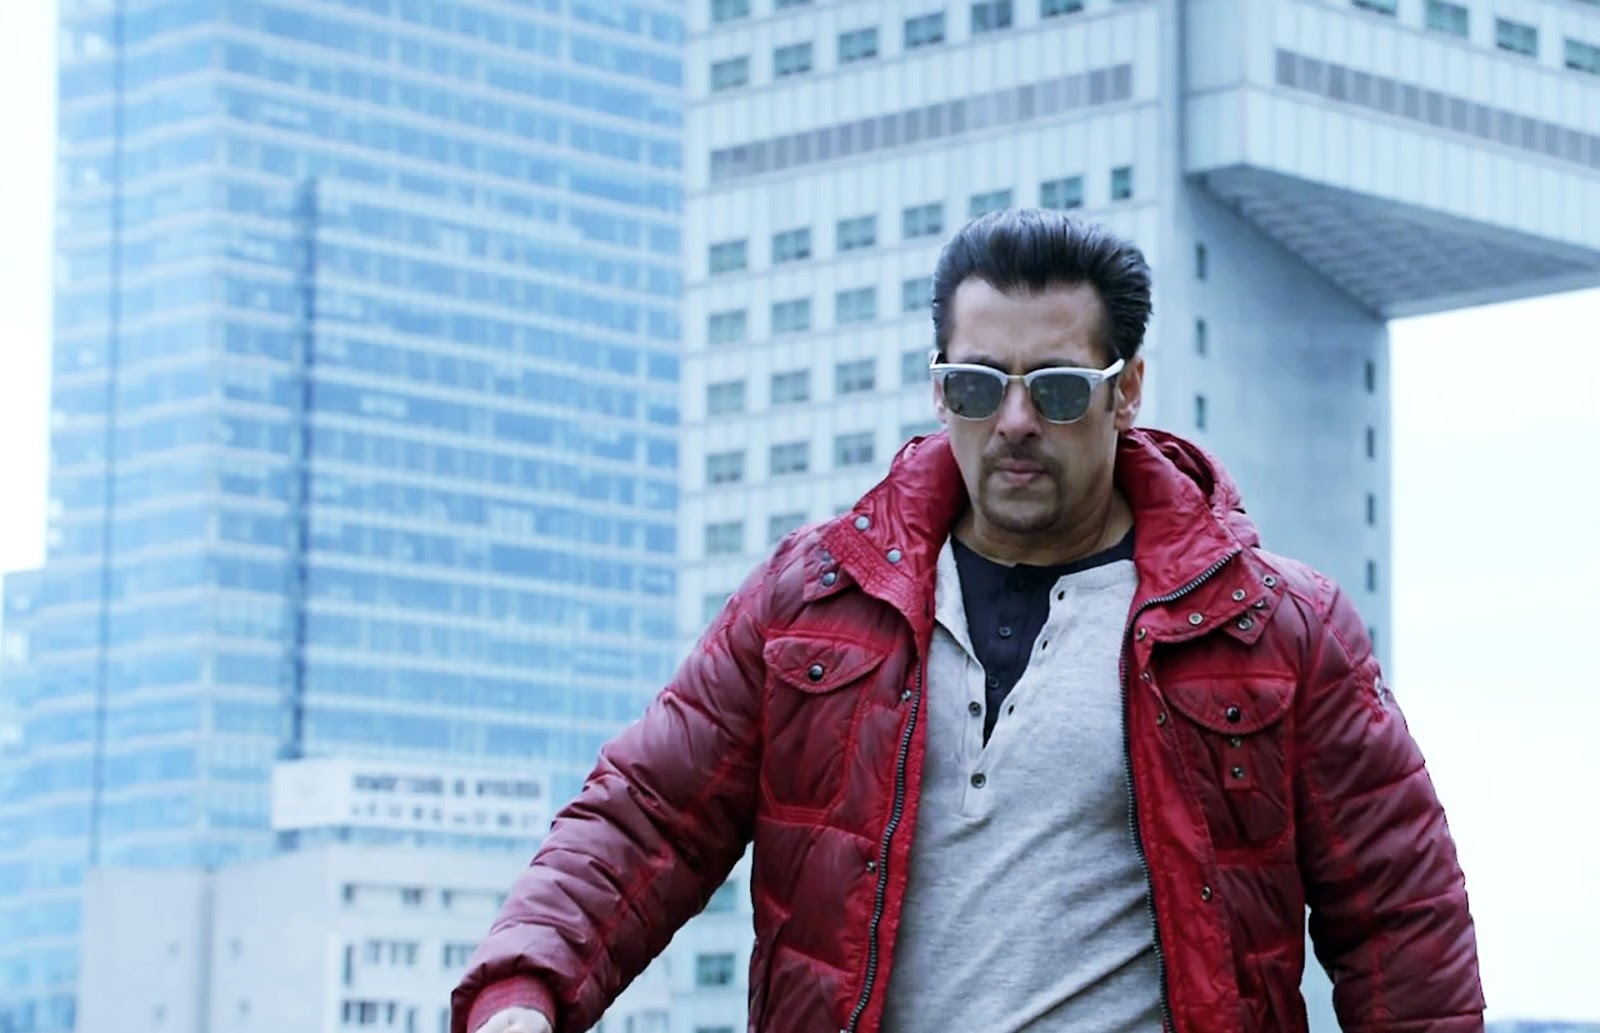 Salman Khan Complete Biography Zee Wiki Story, upcoming movies, Controversies, Wallpapers Of Salman Khan Download